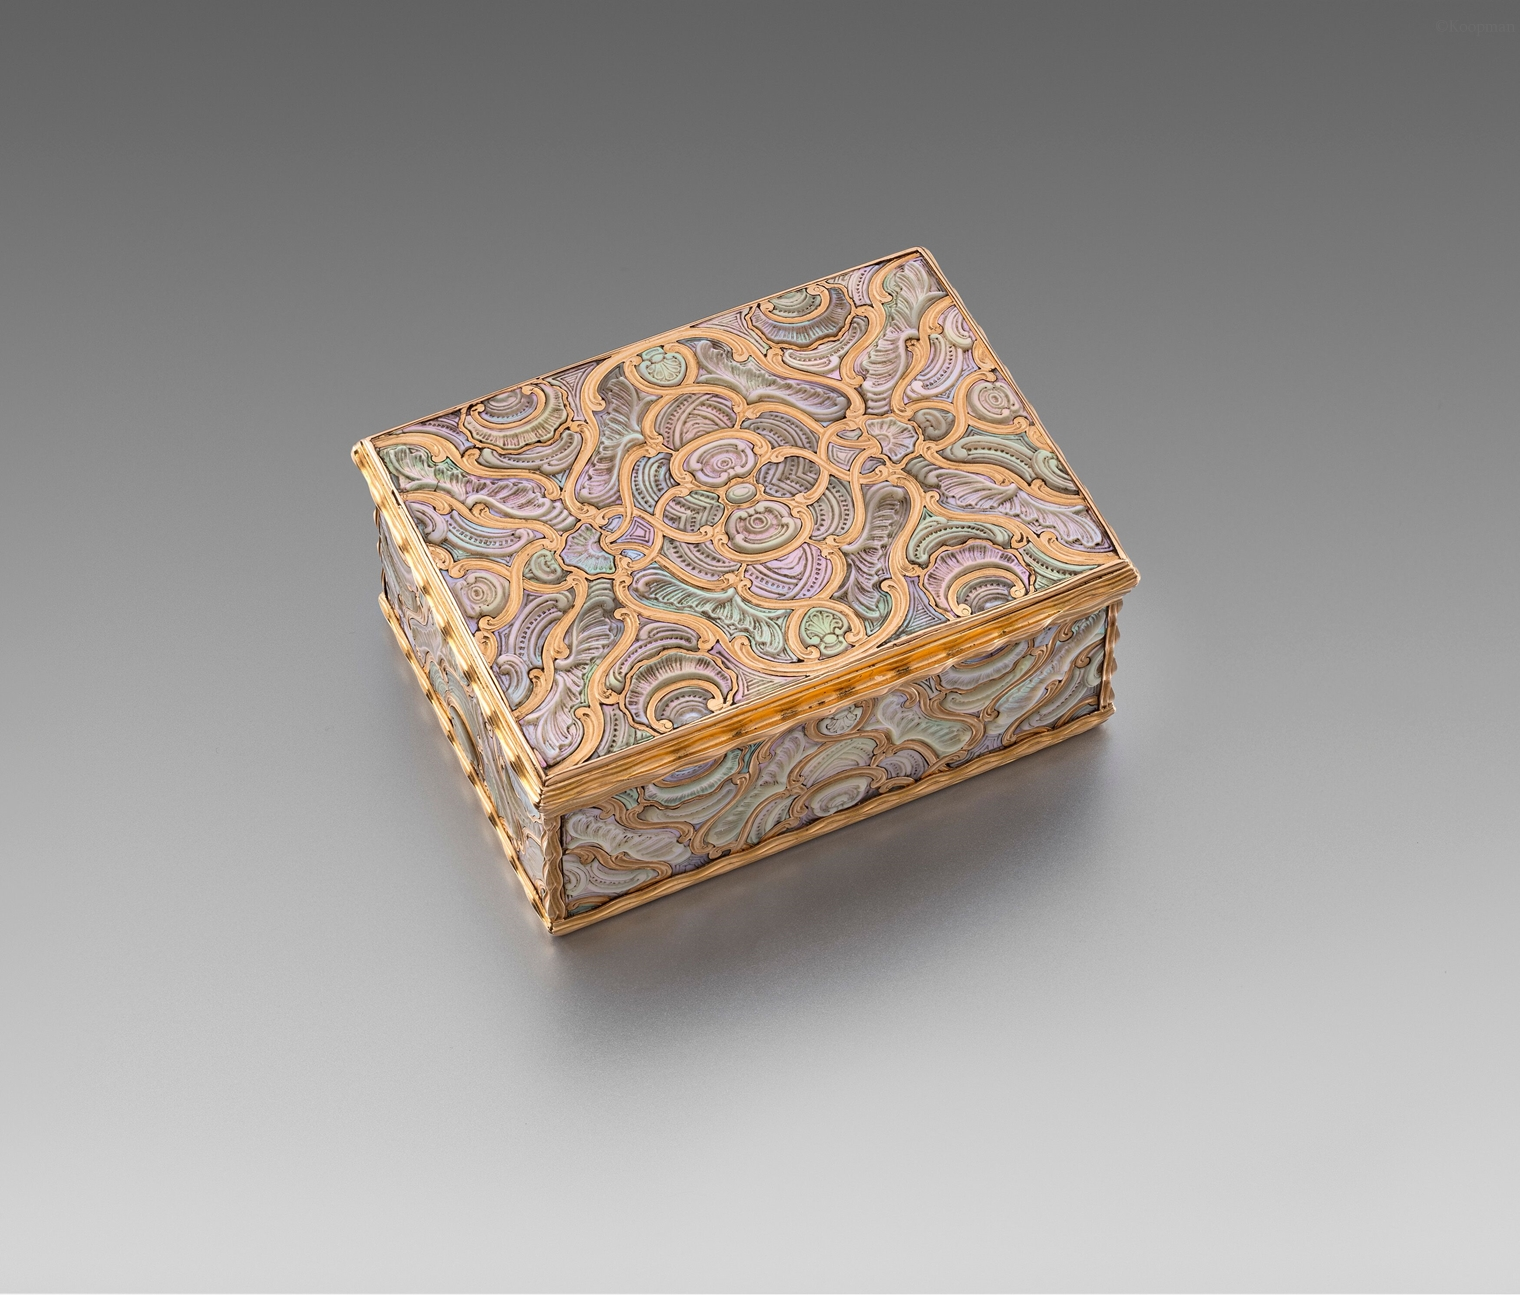 A German Mother of Pearl Inlaid Gold Box